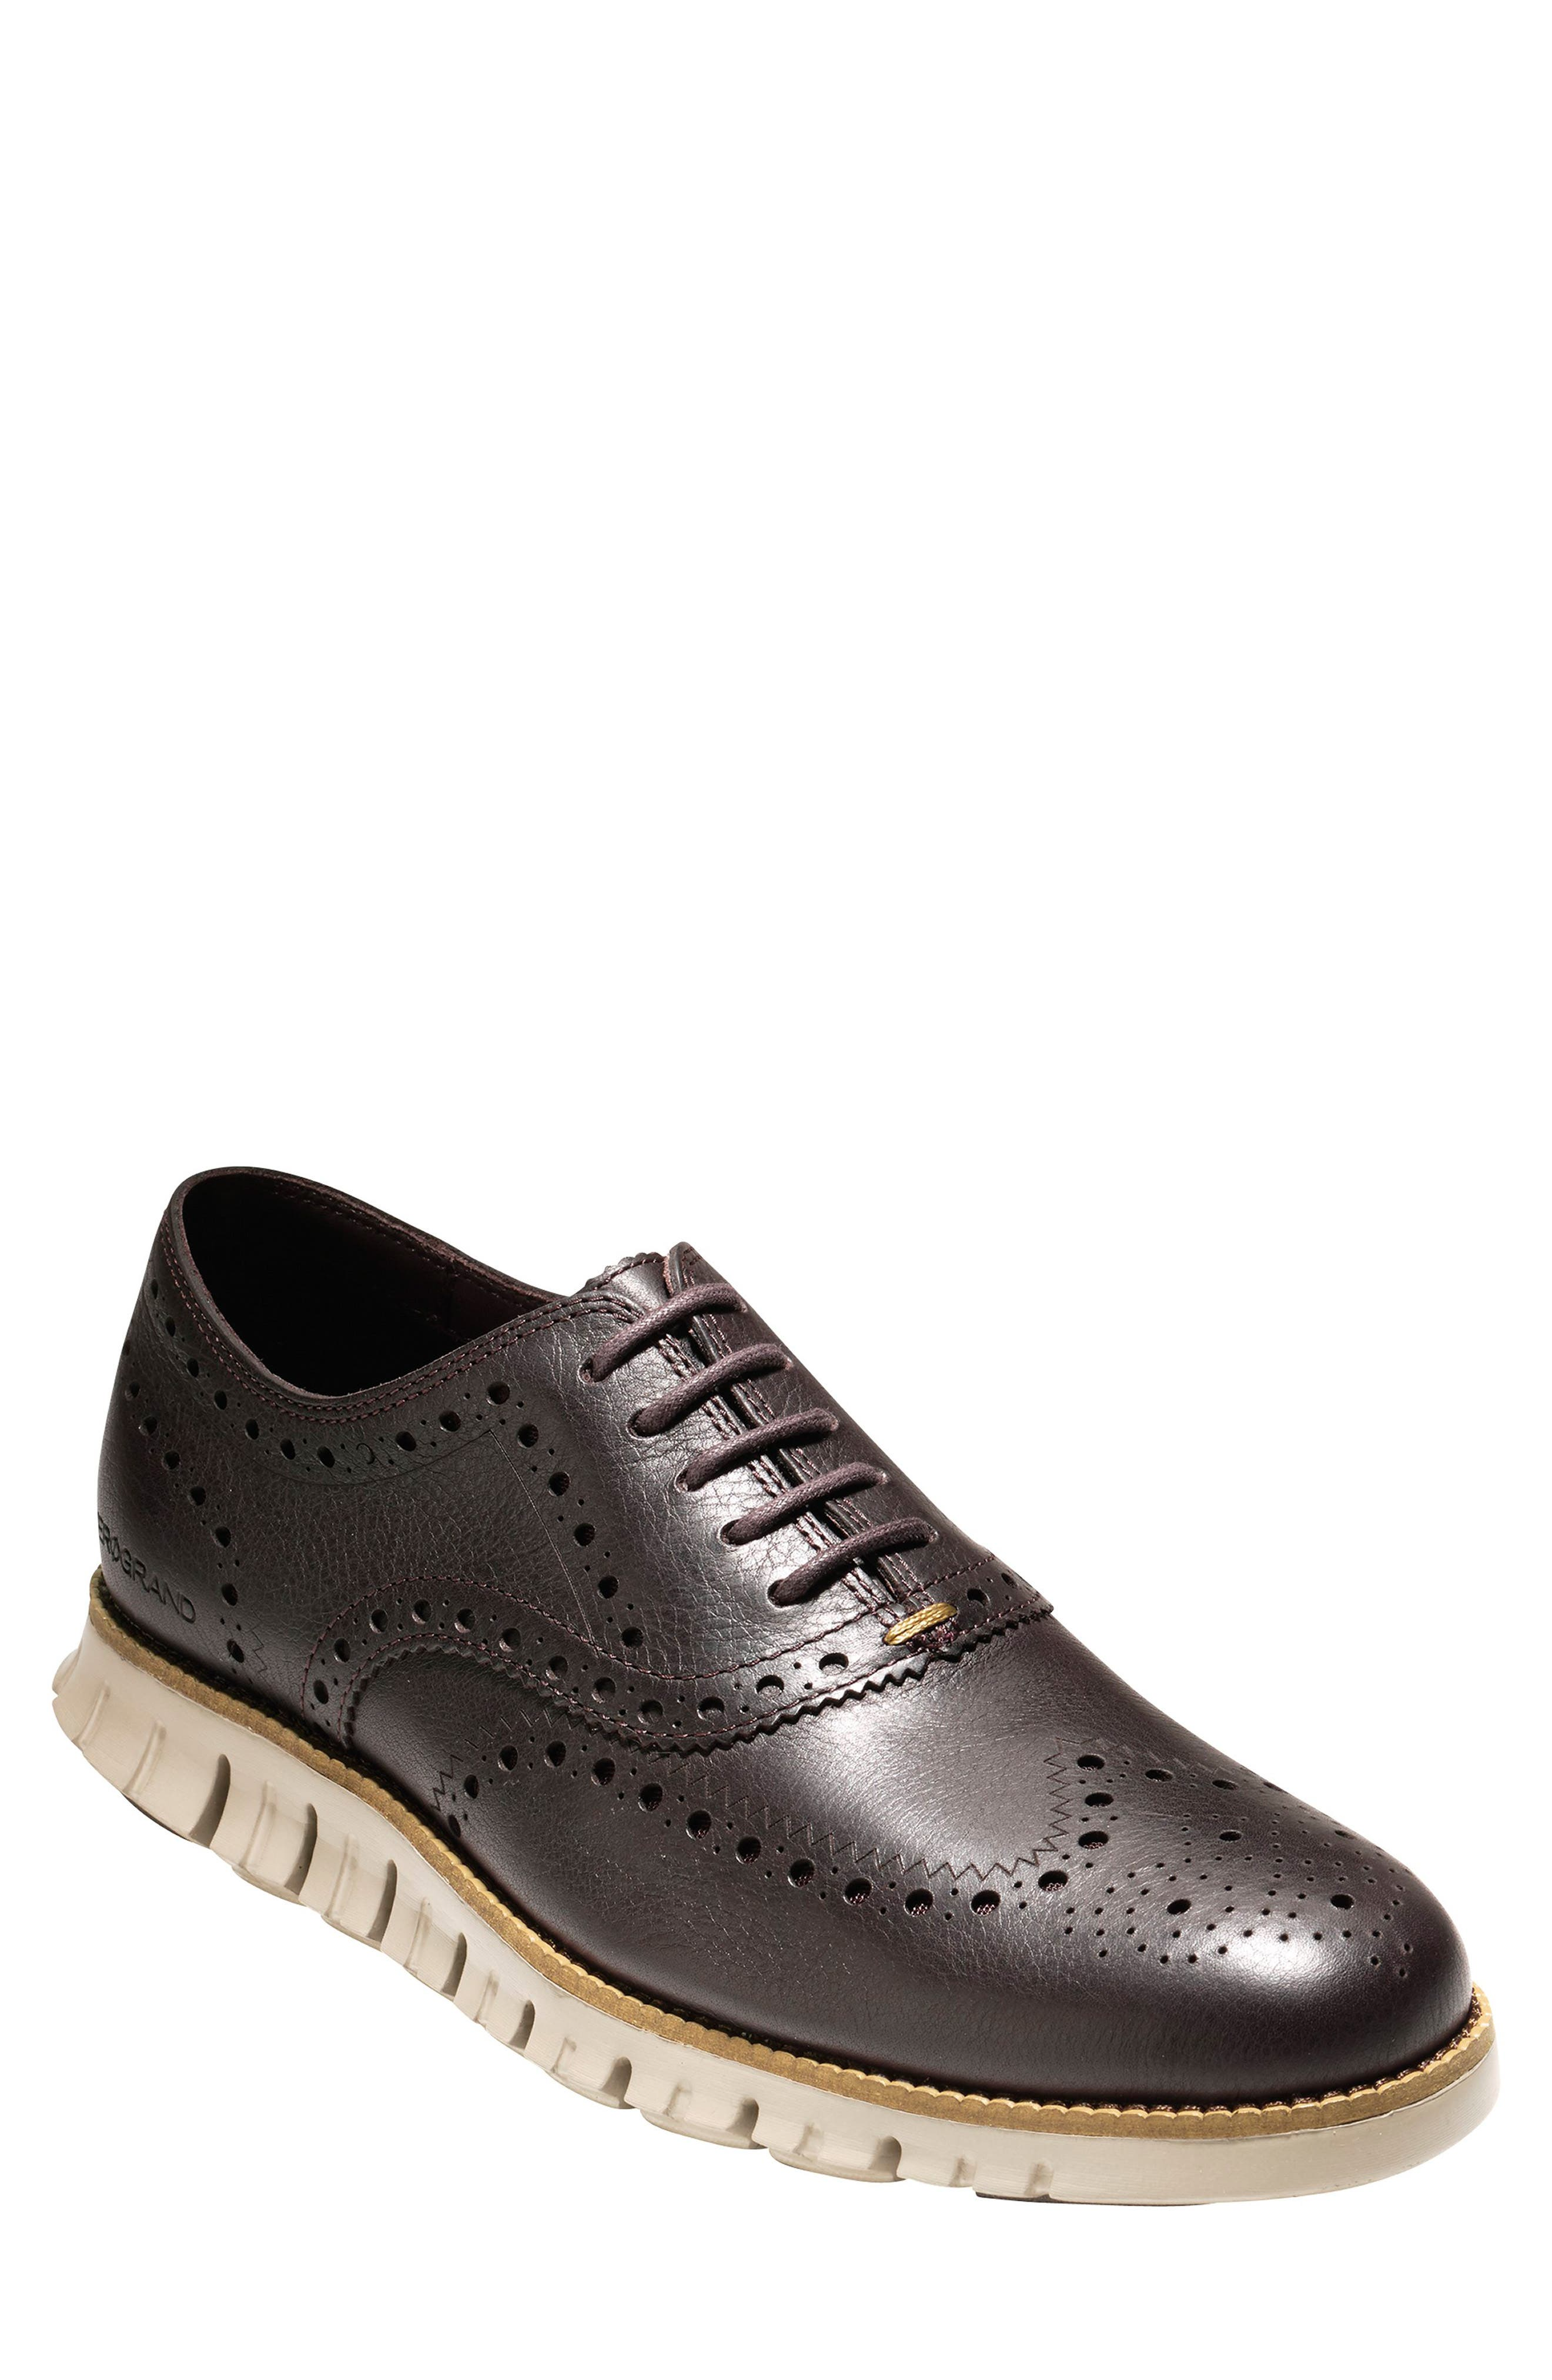 COLE HAAN, 'ZeroGrand' Wingtip Oxford, Main thumbnail 1, color, JAVA LEATHER